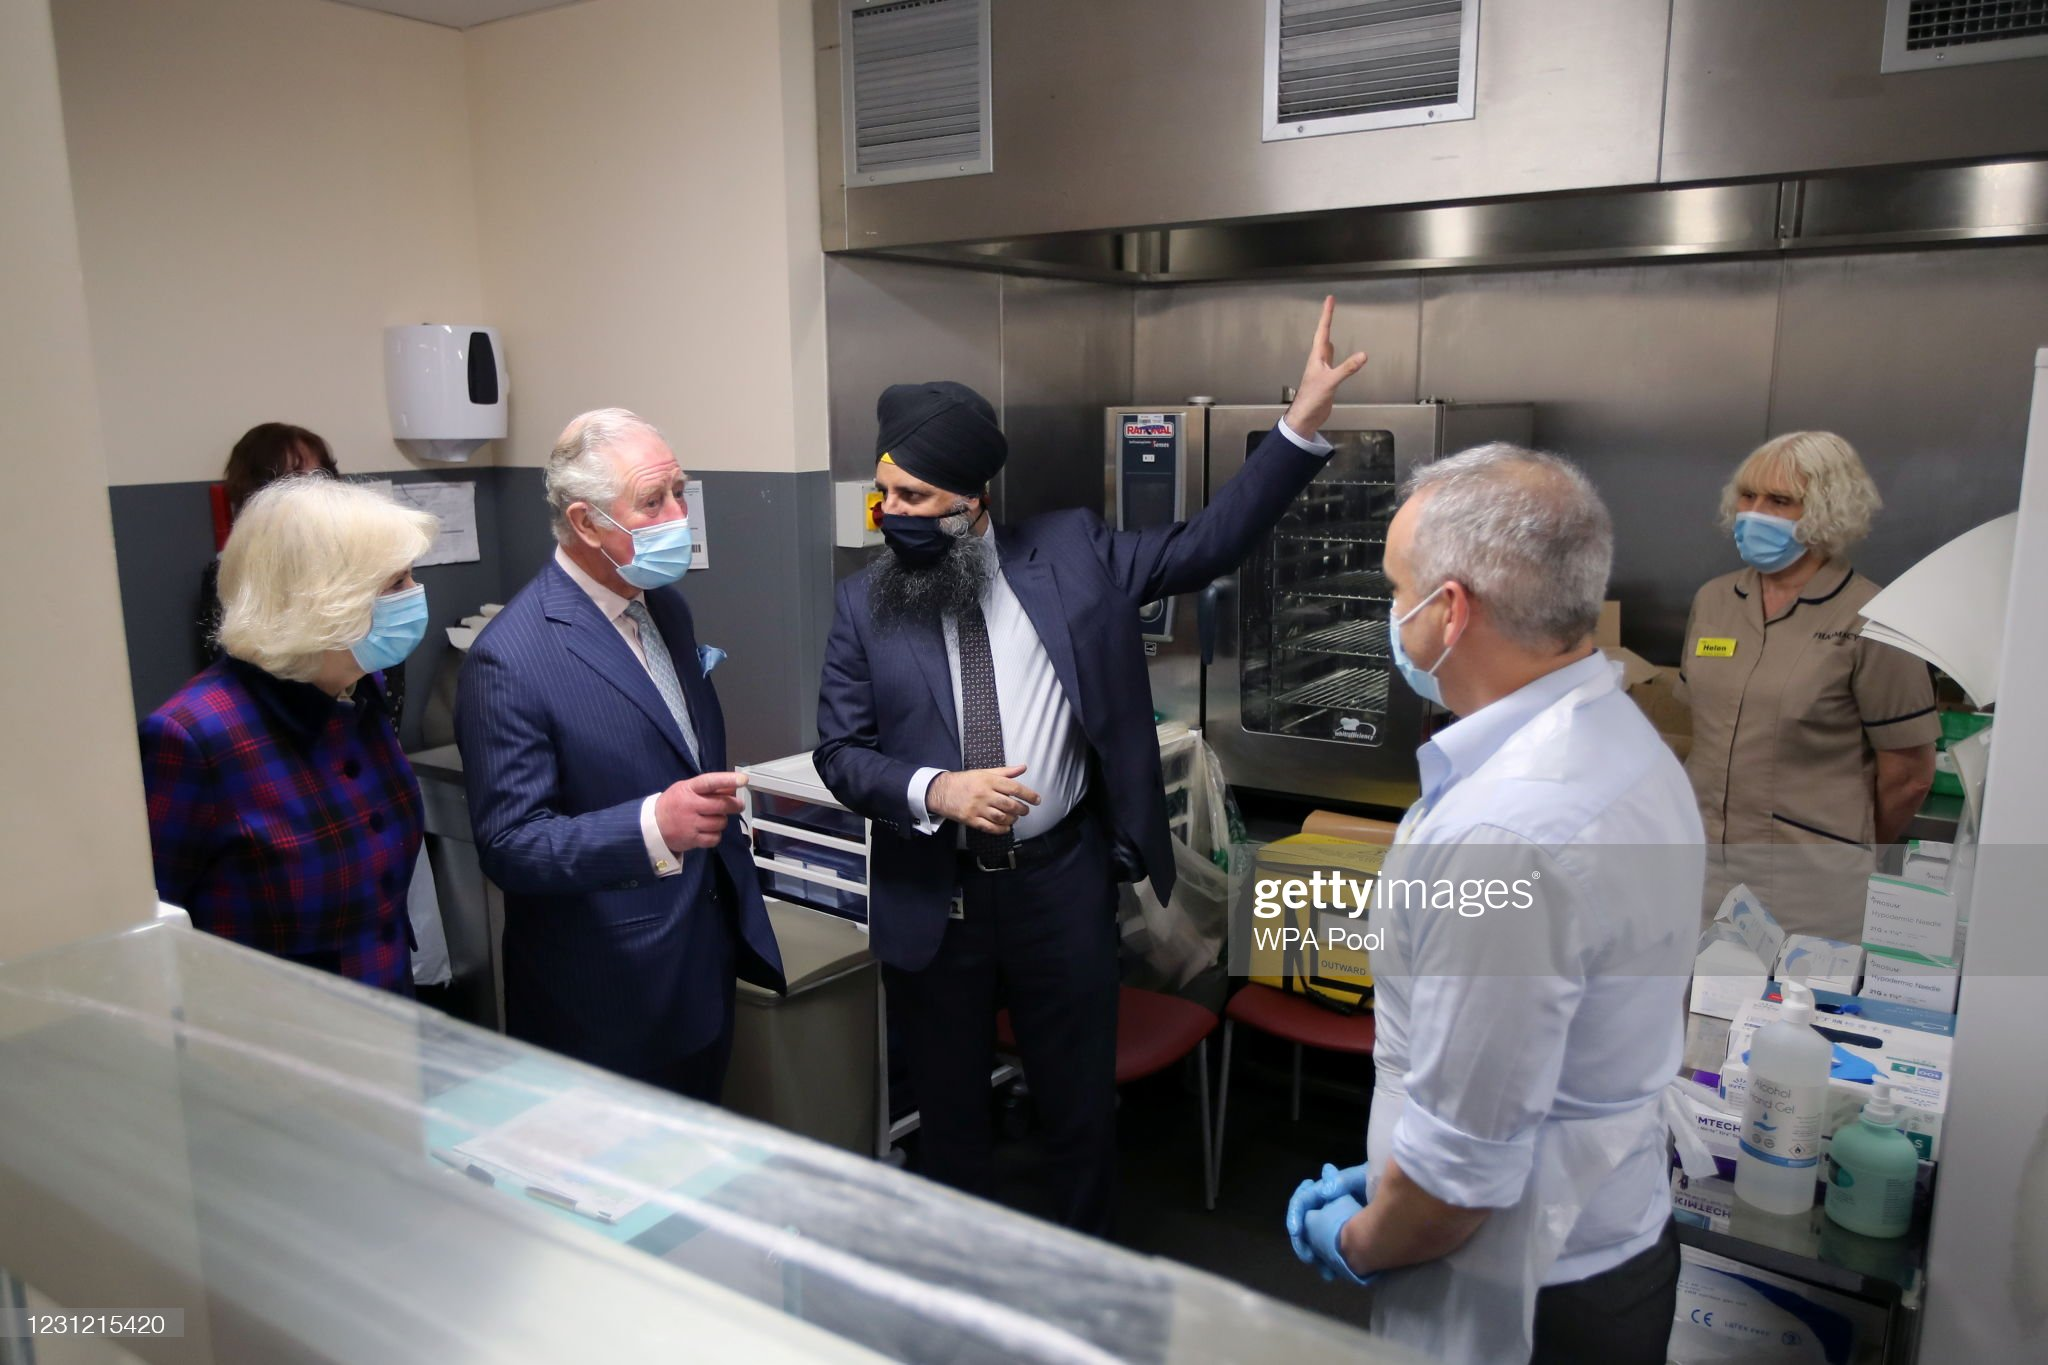 prince-charles-prince-of-wales-and-camilla-duchess-of-cornwall-talk-picture-id1231215420